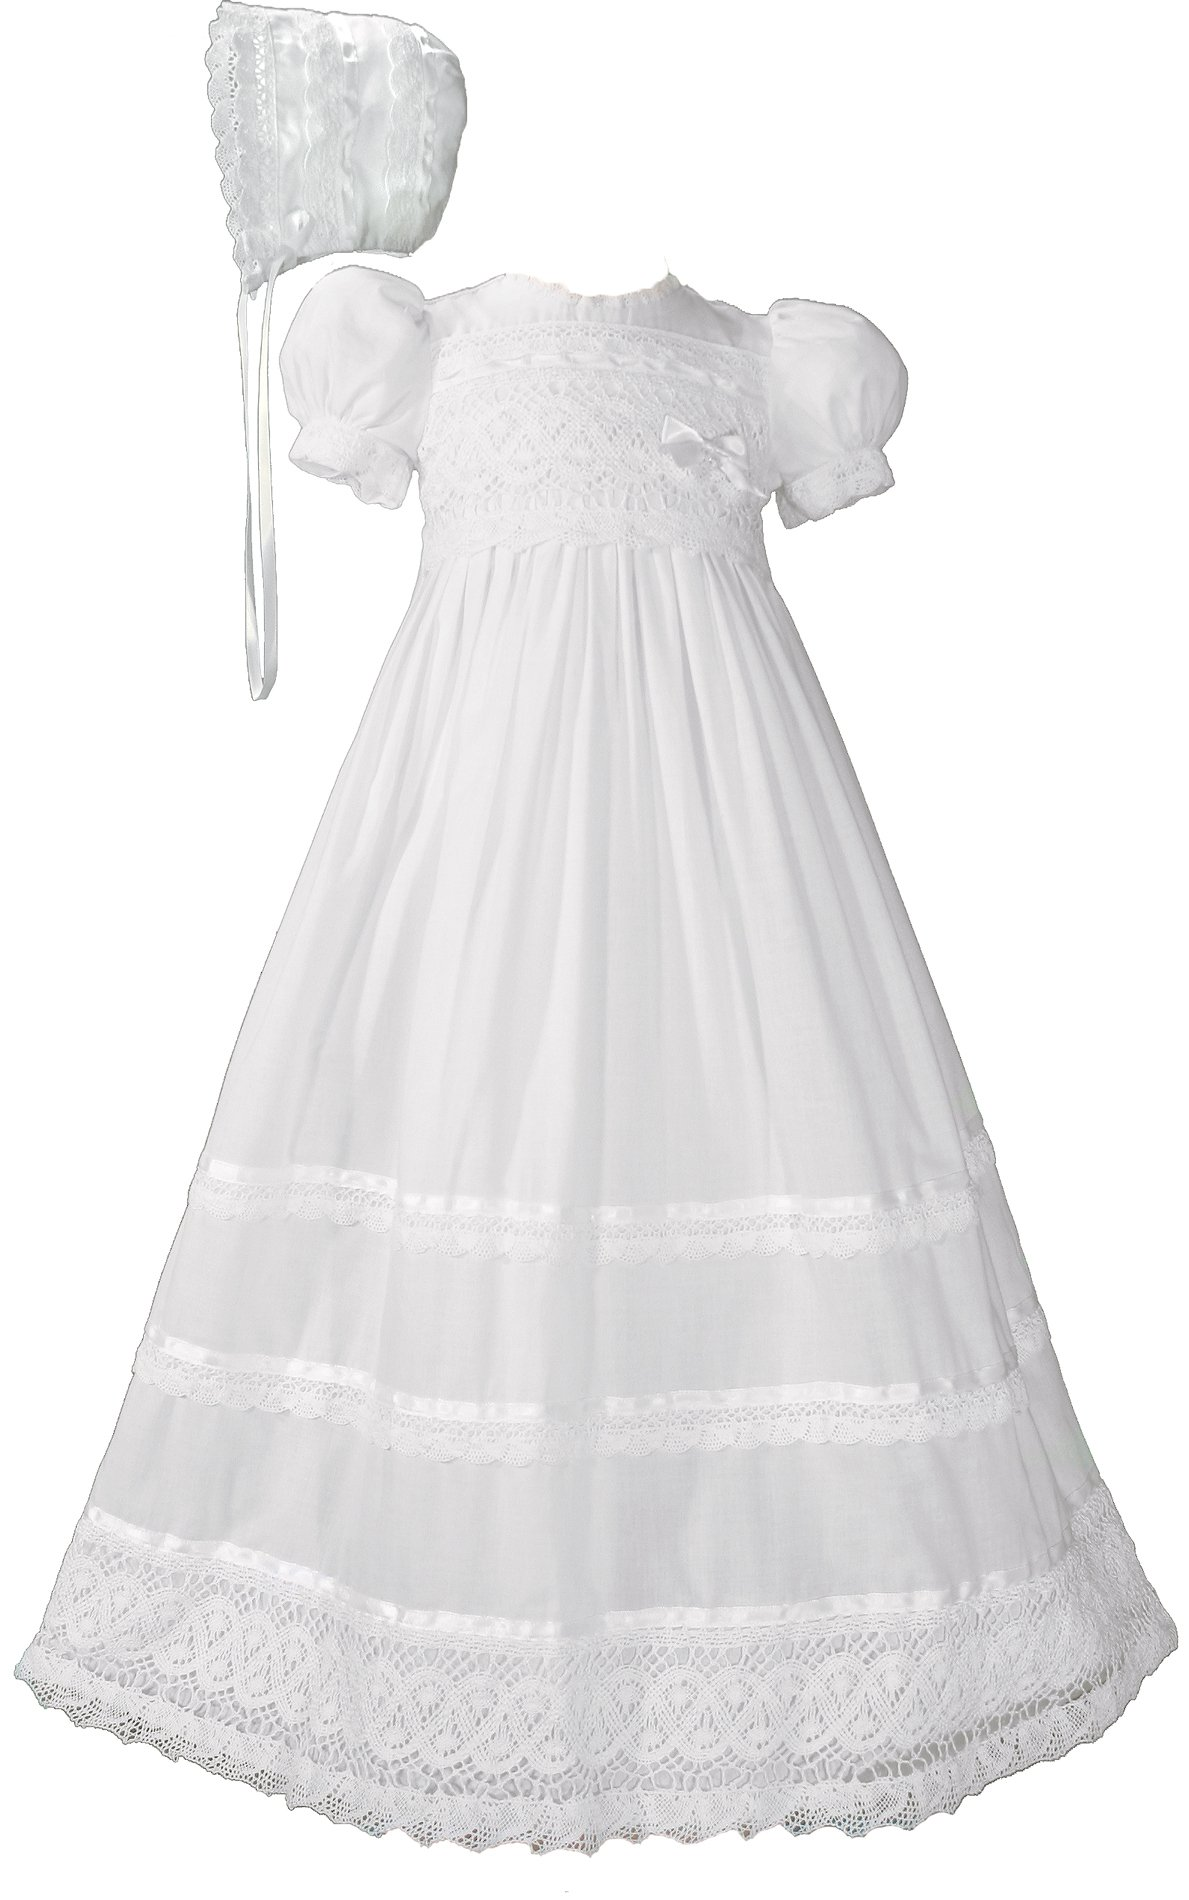 Girls Cotton Short Sleeve Dress Christening Gown Baptism Gown with Laces and Ribbon 6M